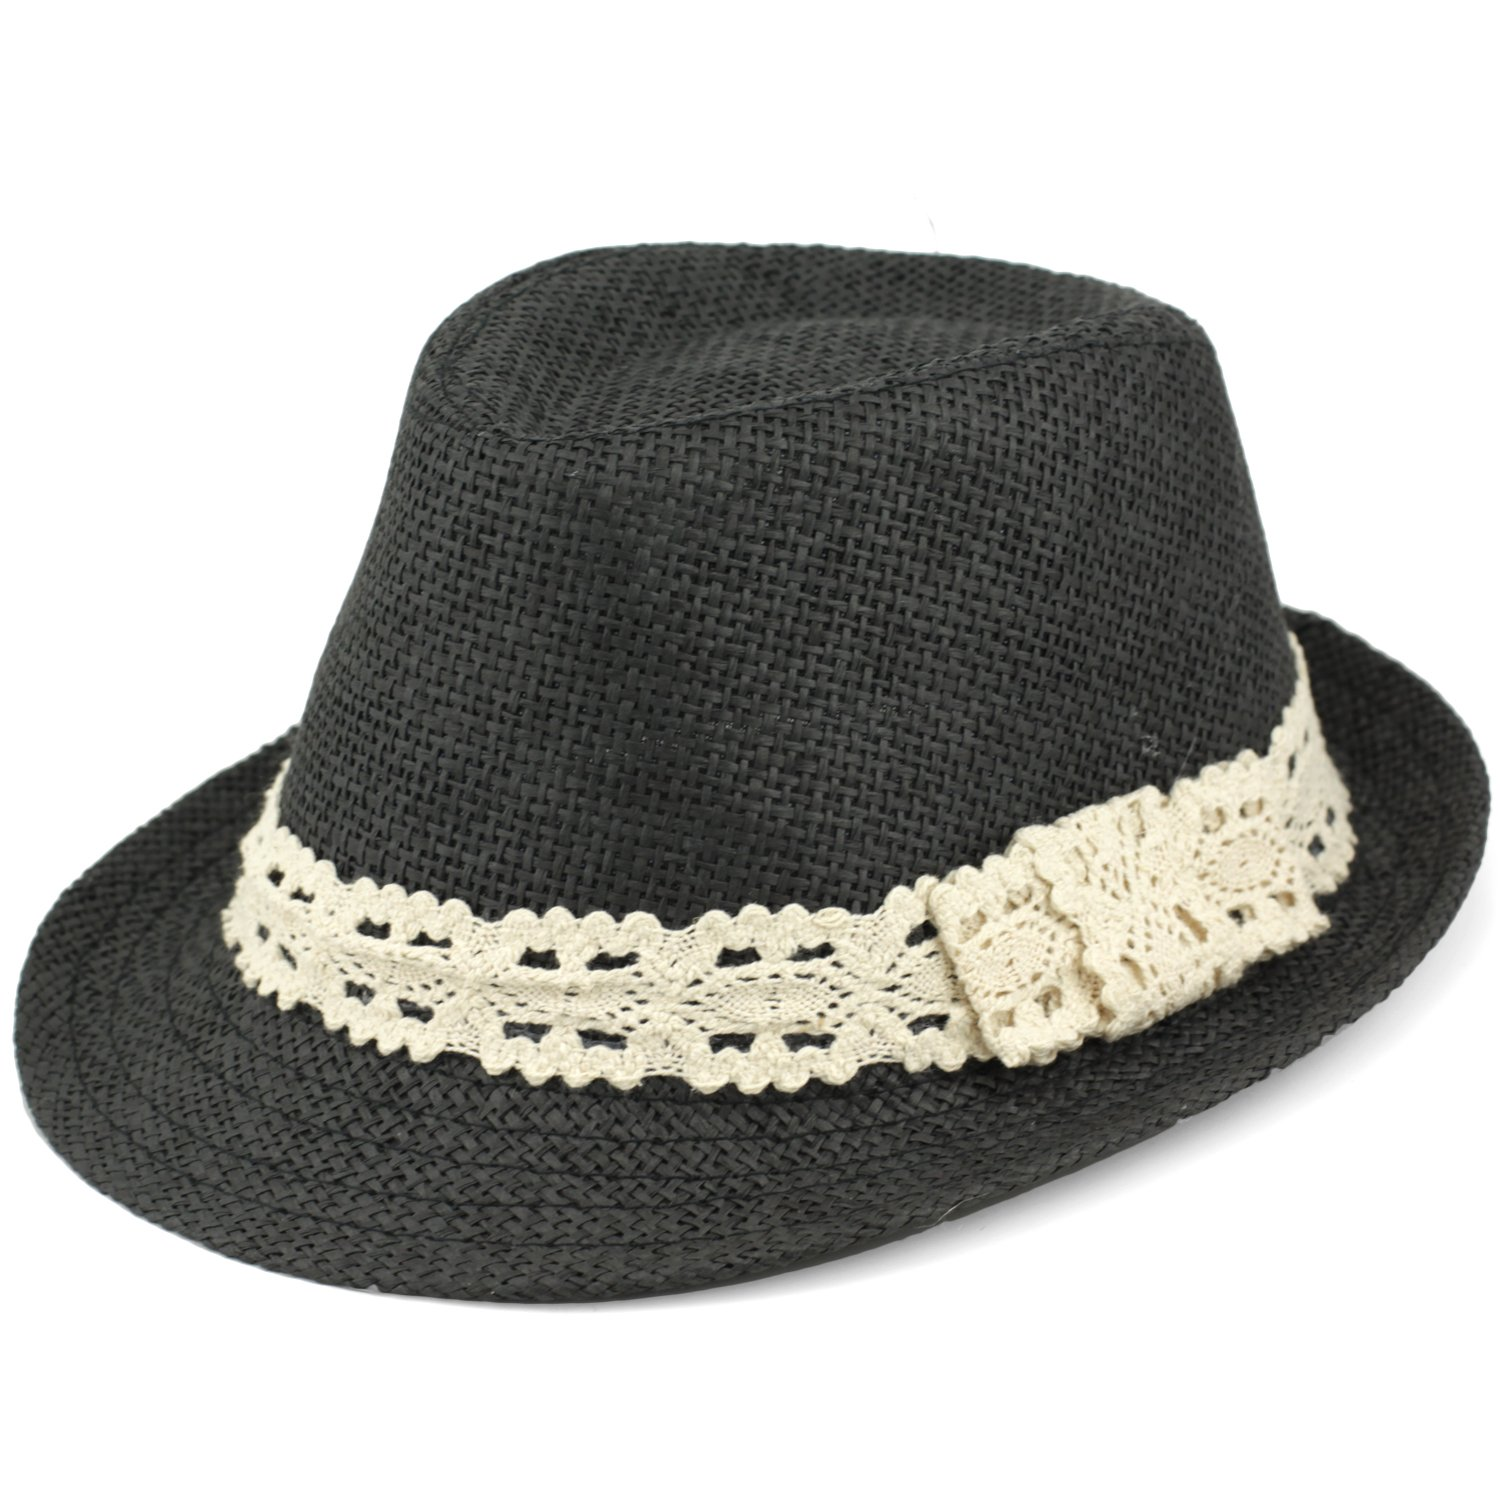 Trilby Fedora Hats for Kids - Summer, Beach & Party Hat for Boys & Girls - Short Brim Childrens Sun Hat - Cream Lace Trim Band - Black